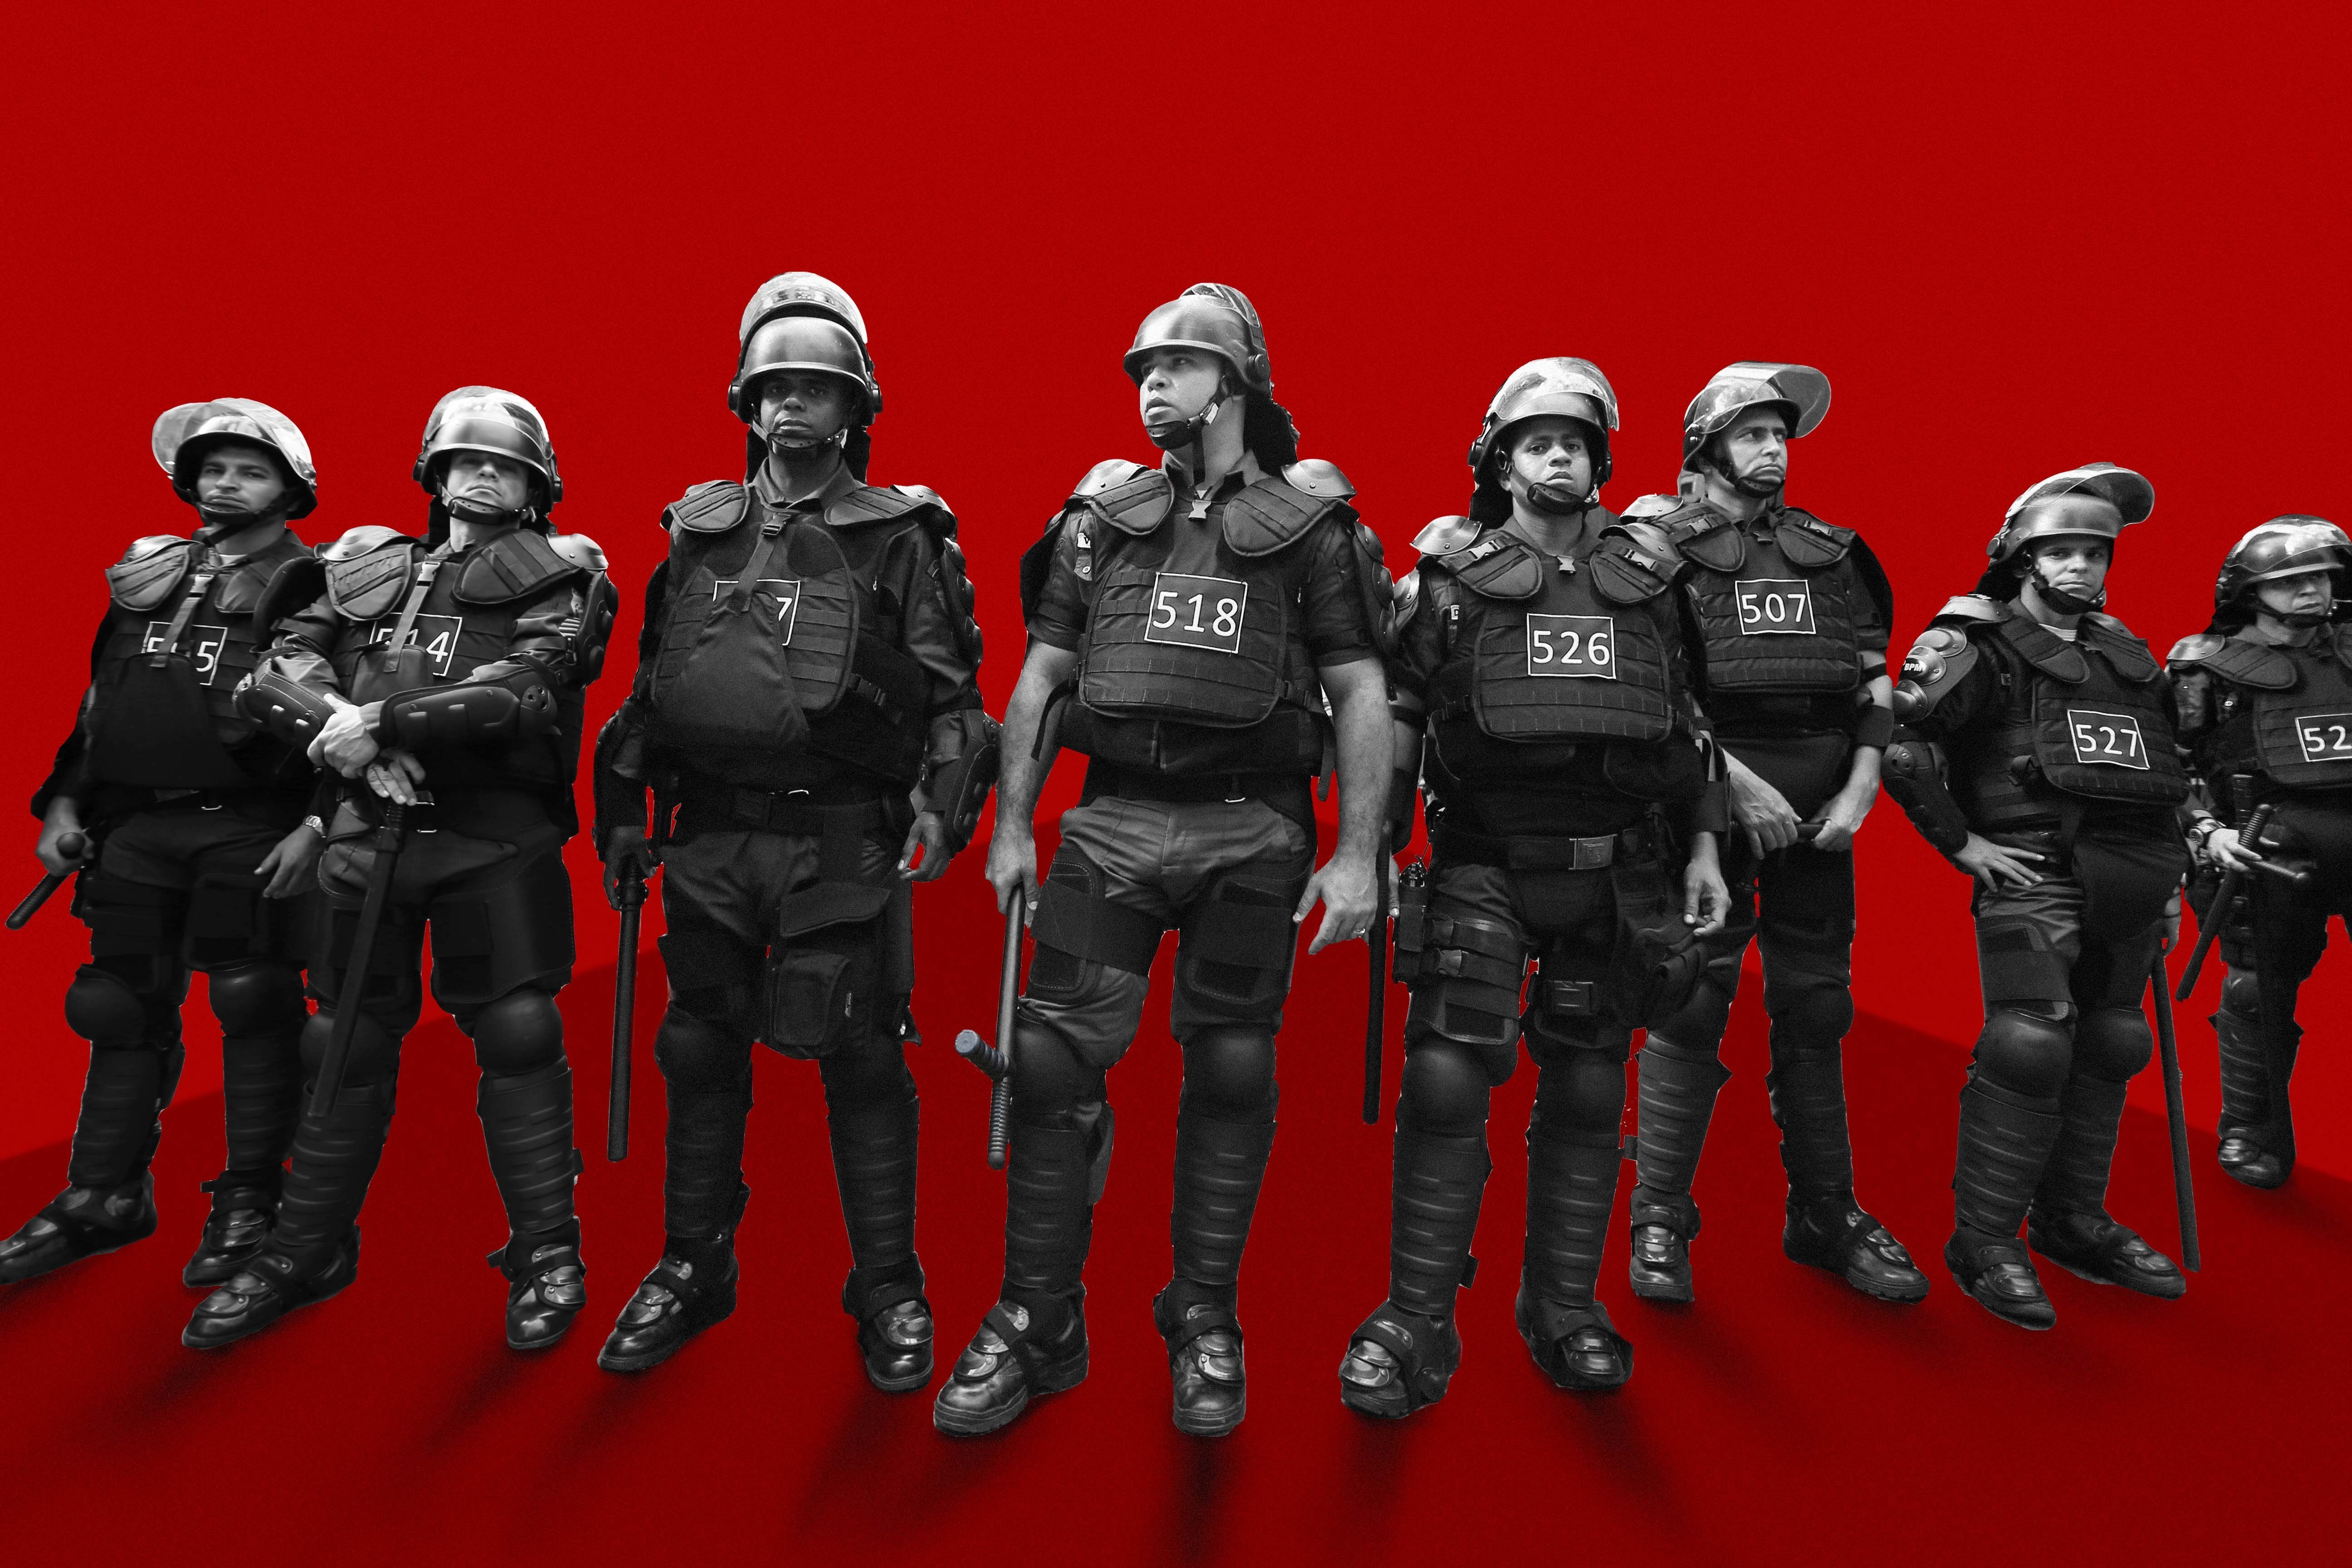 How Police Violence Paves The Way To Authoritarianism